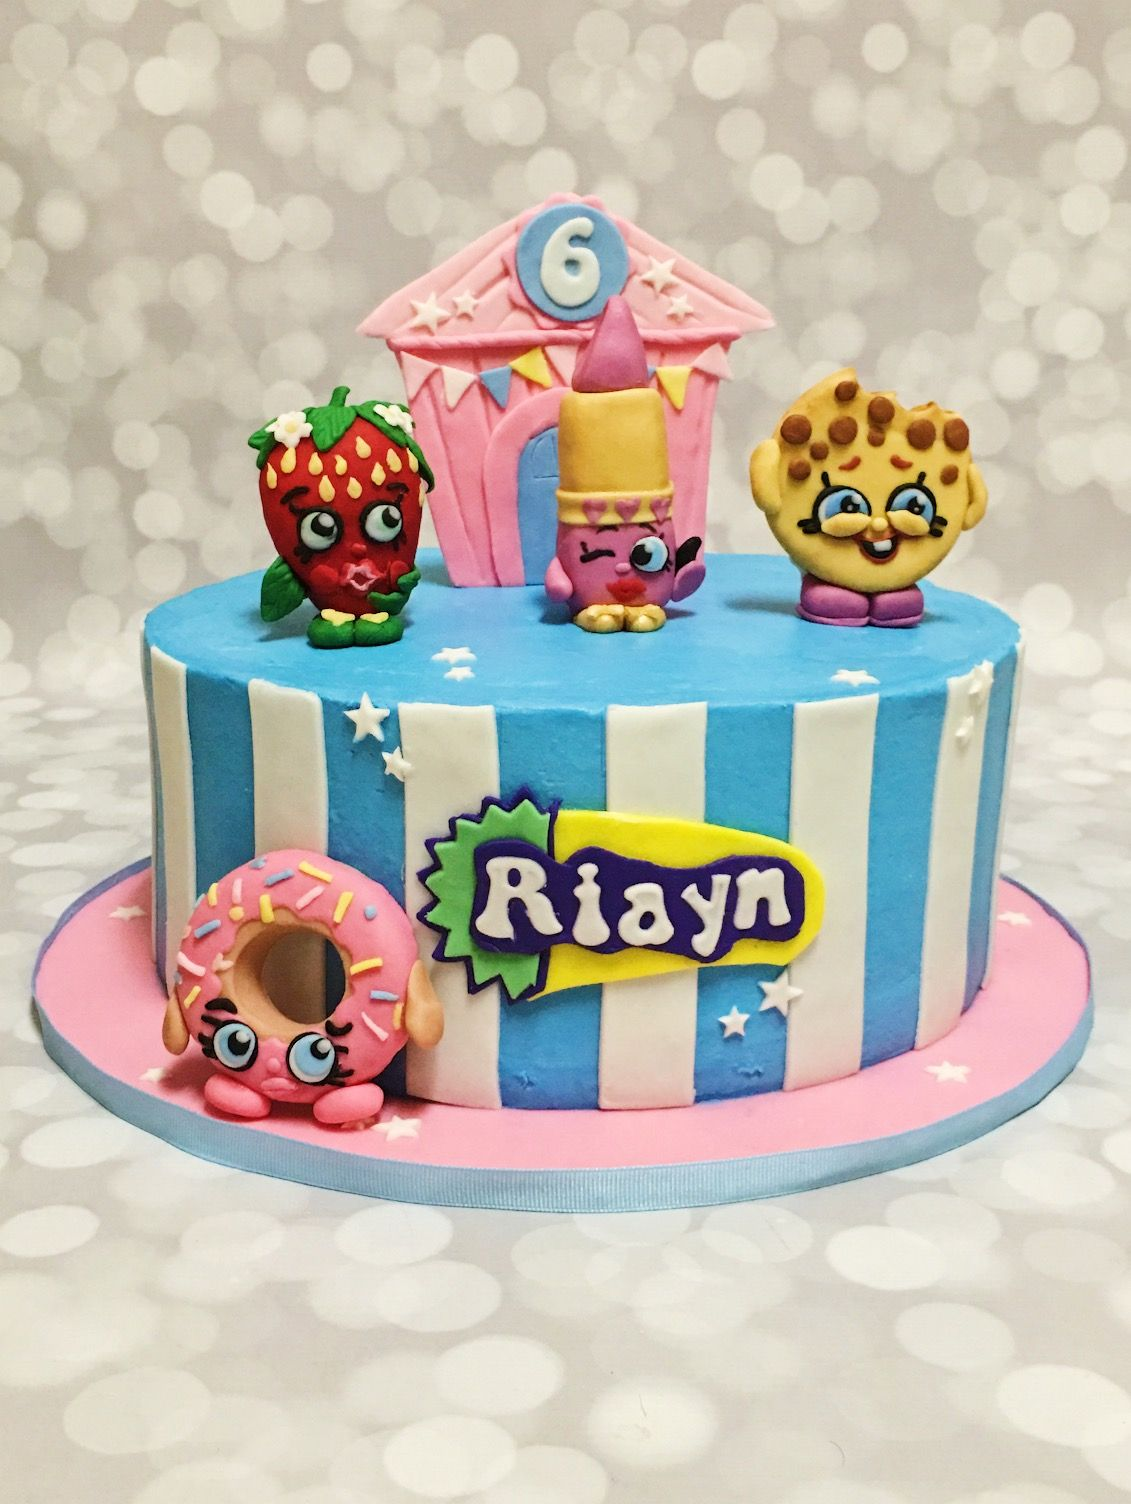 Custom Shopkins Cake by A Little Slice of Heaven Bakery in Atlanta